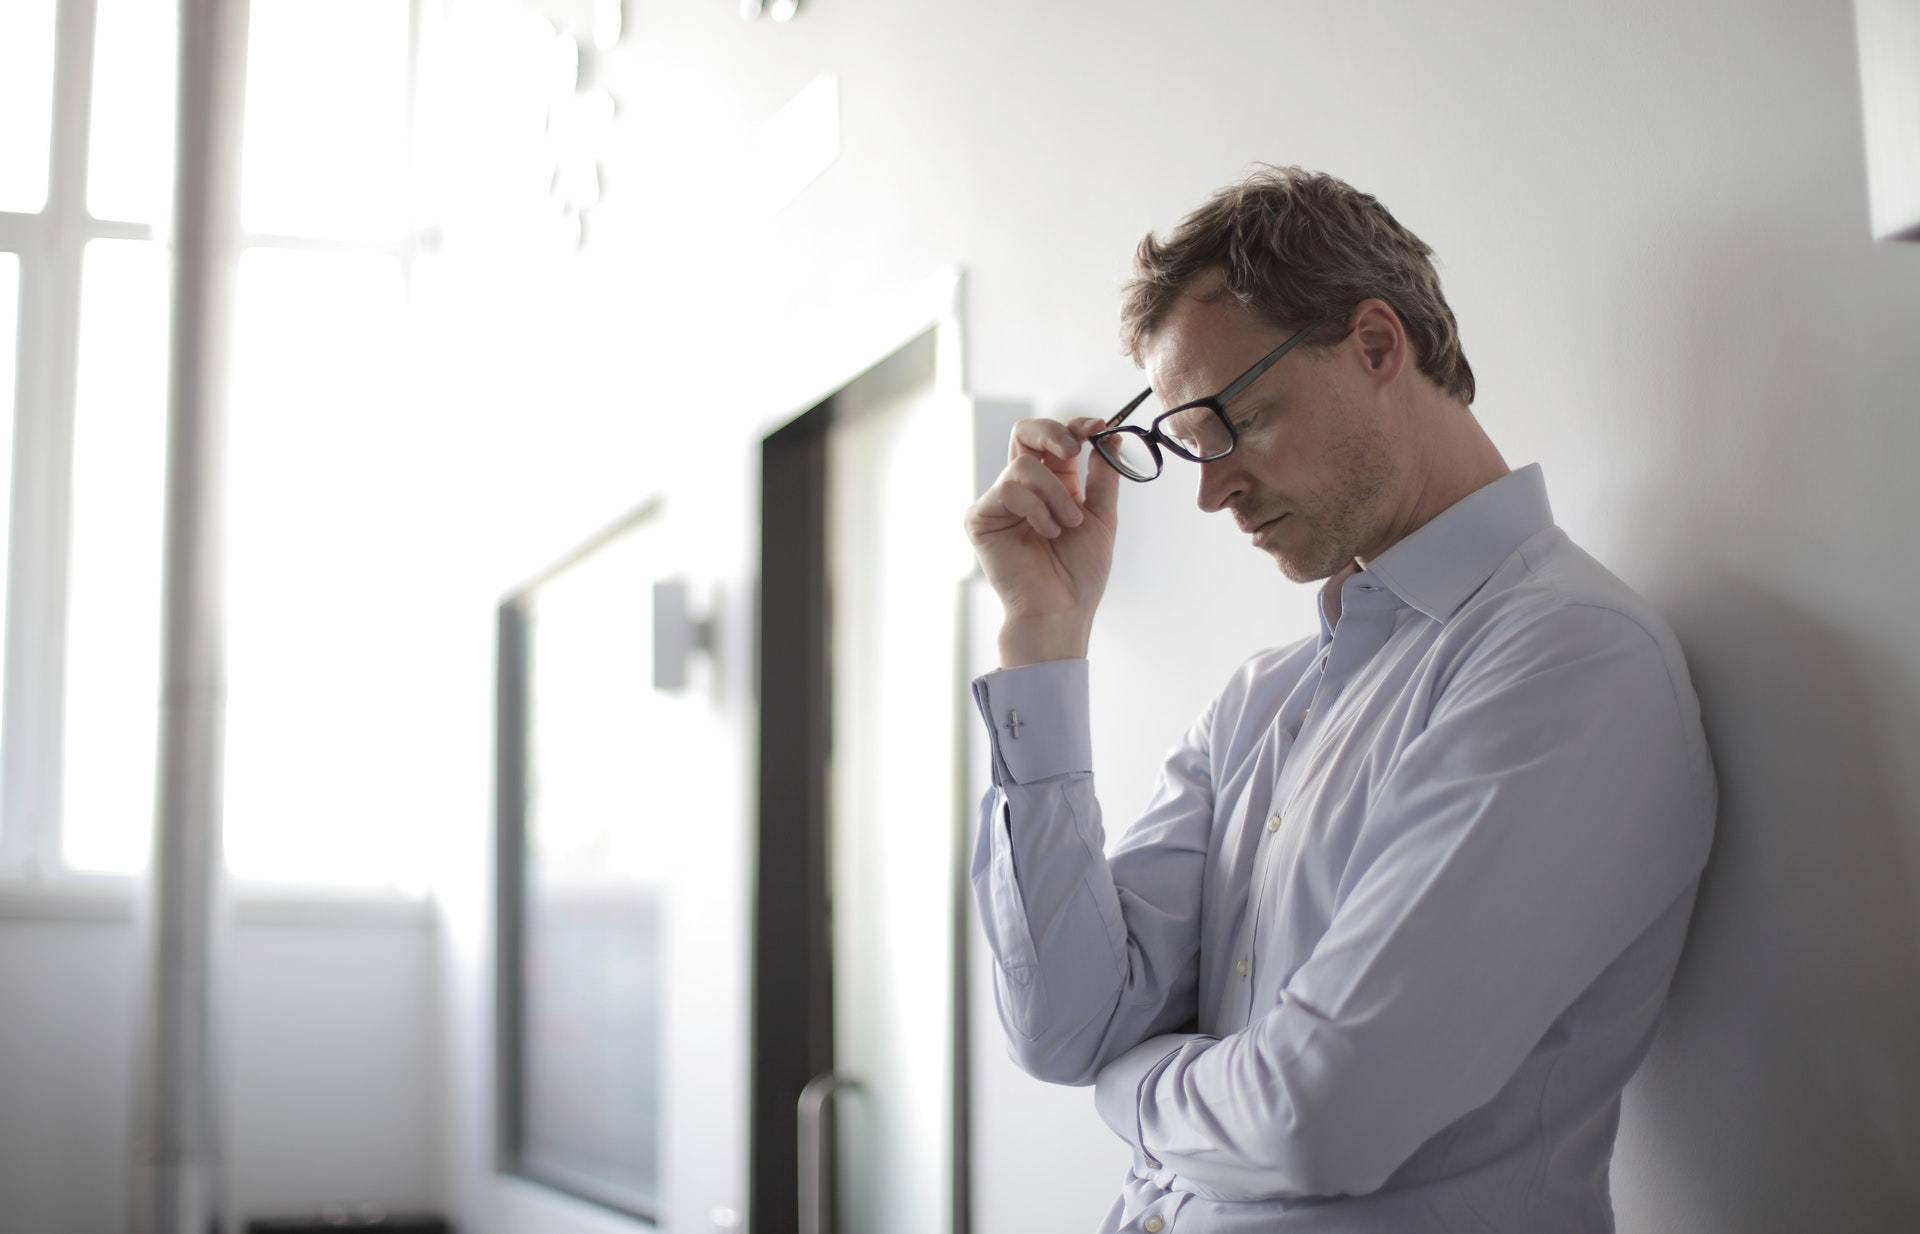 guy with glasses leaning up against a wall in frustration